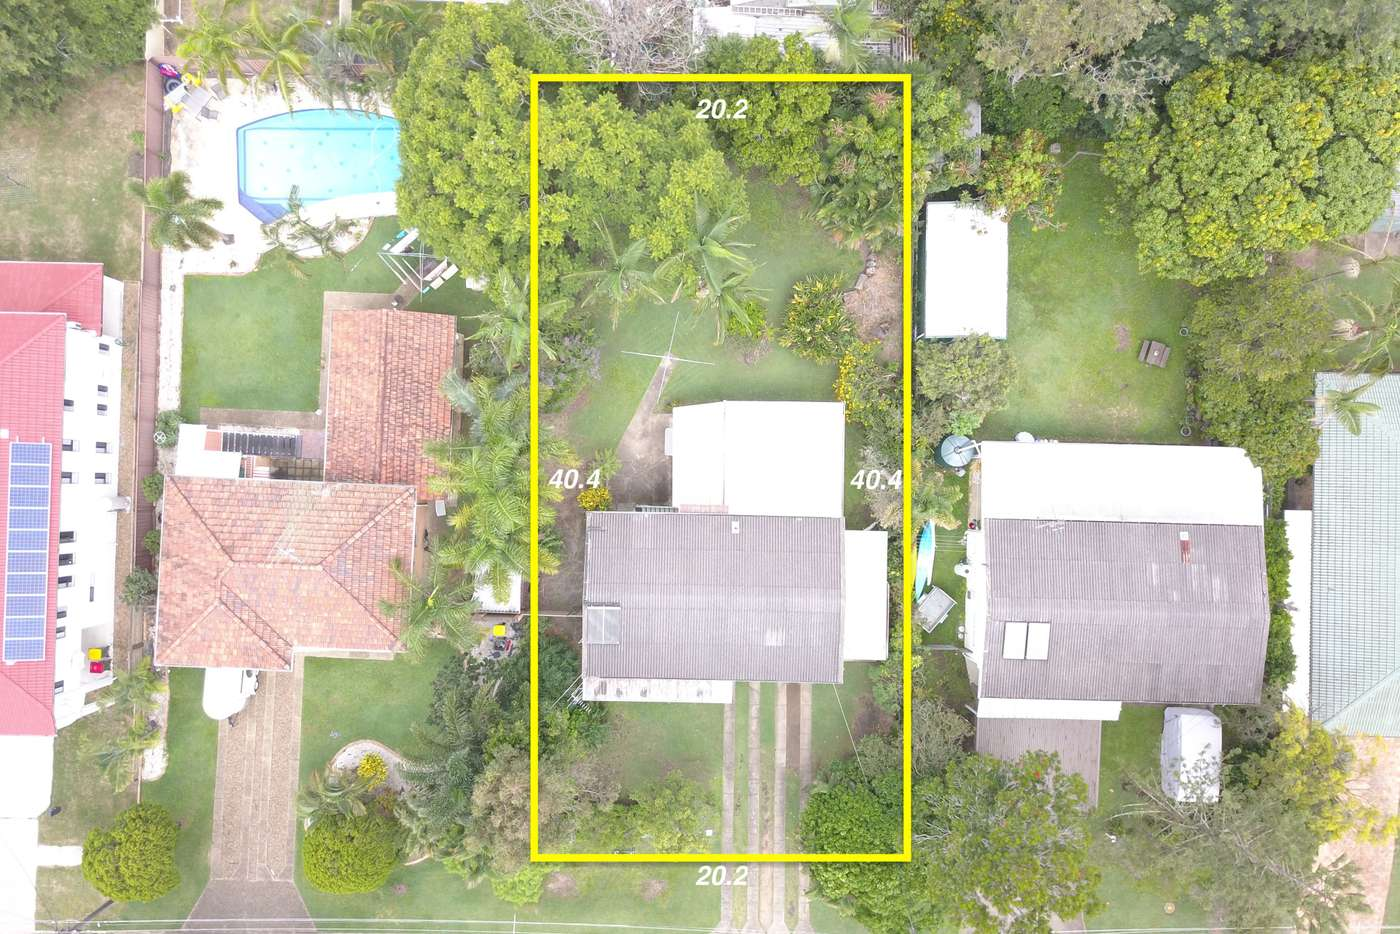 Main view of Homely house listing, 169 Highgate Street, Coopers Plains QLD 4108